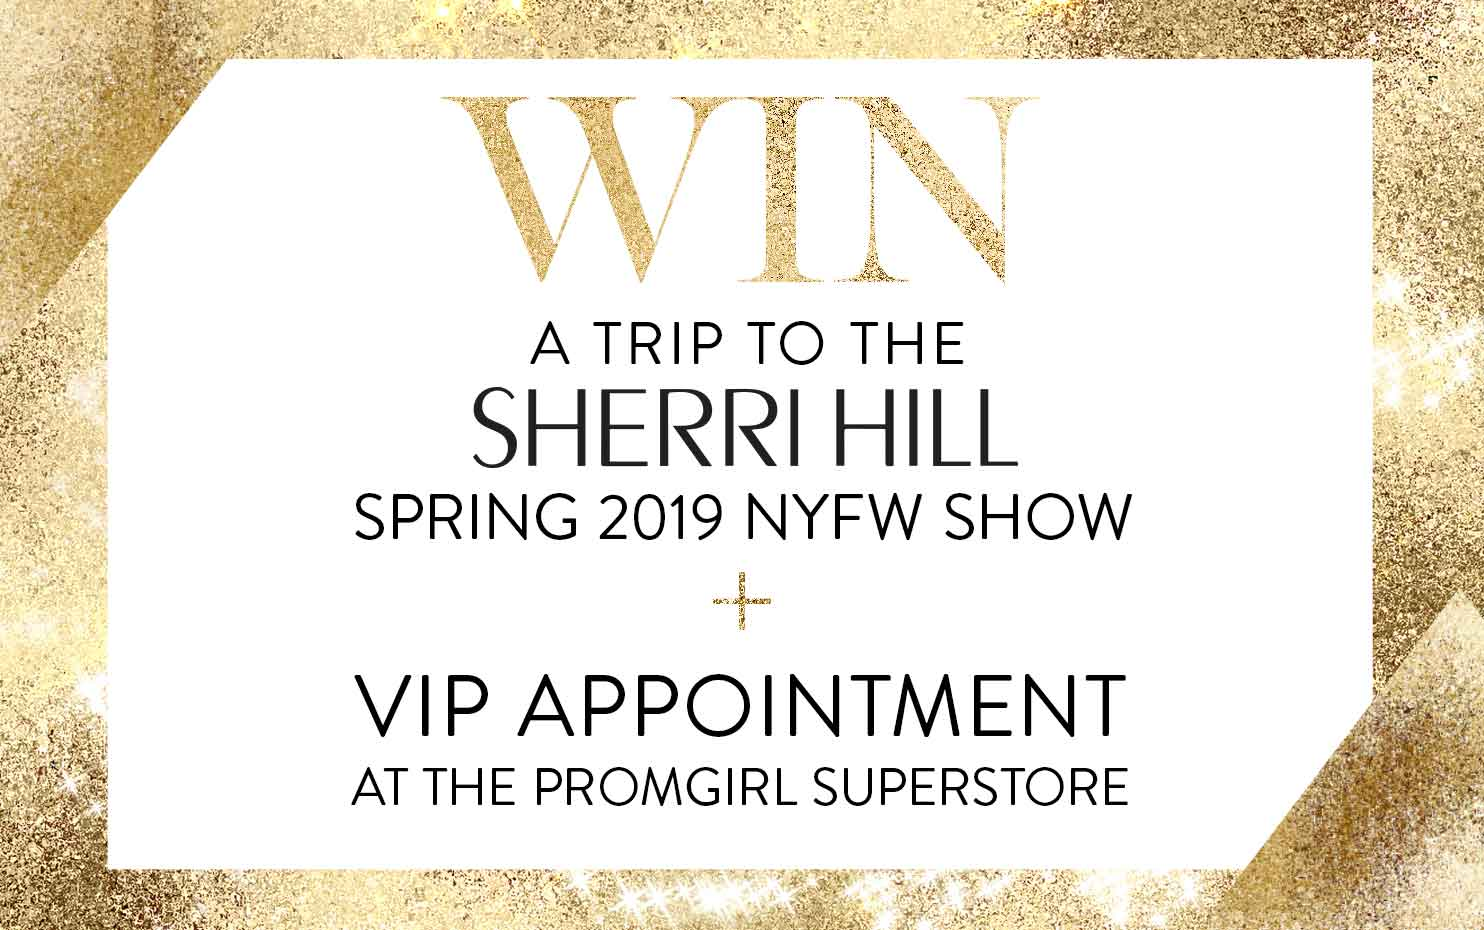 Win Trip to Sherri Hill NYFW show